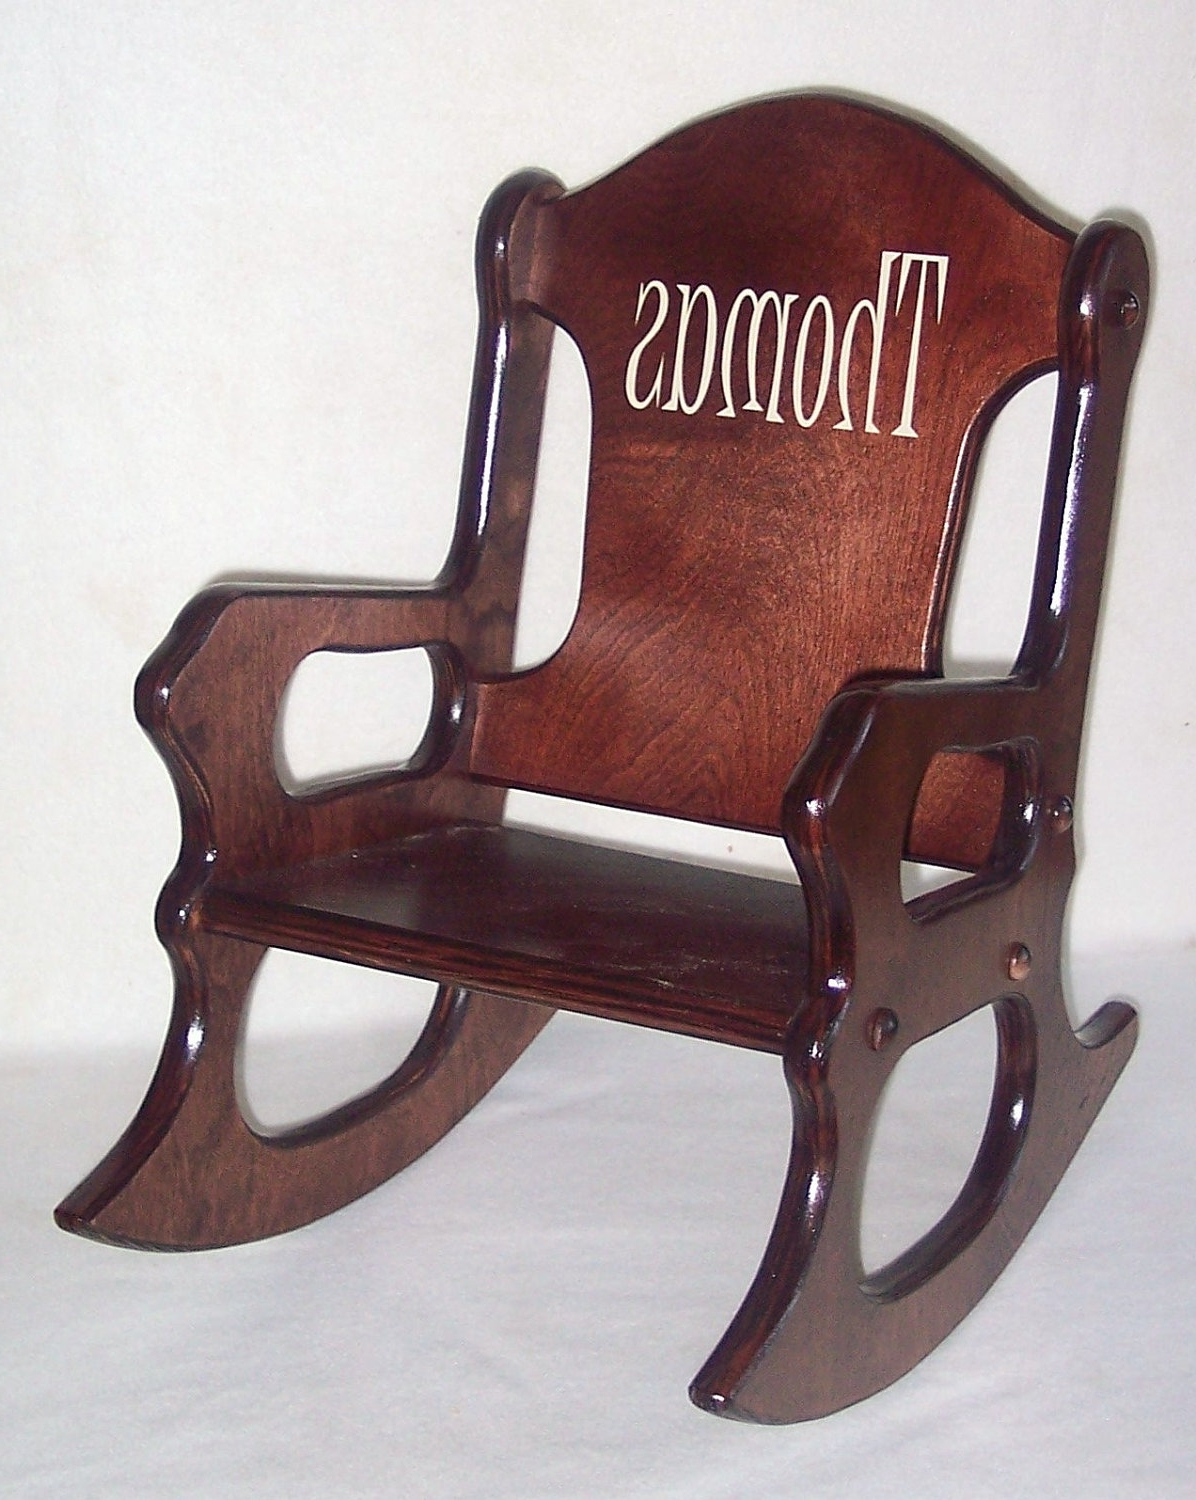 Popular Rocking Chairs For Toddlers With Wooden Kids Rocking Chair Personalized Cherry Finish, Kid Wood Chair (View 7 of 15)